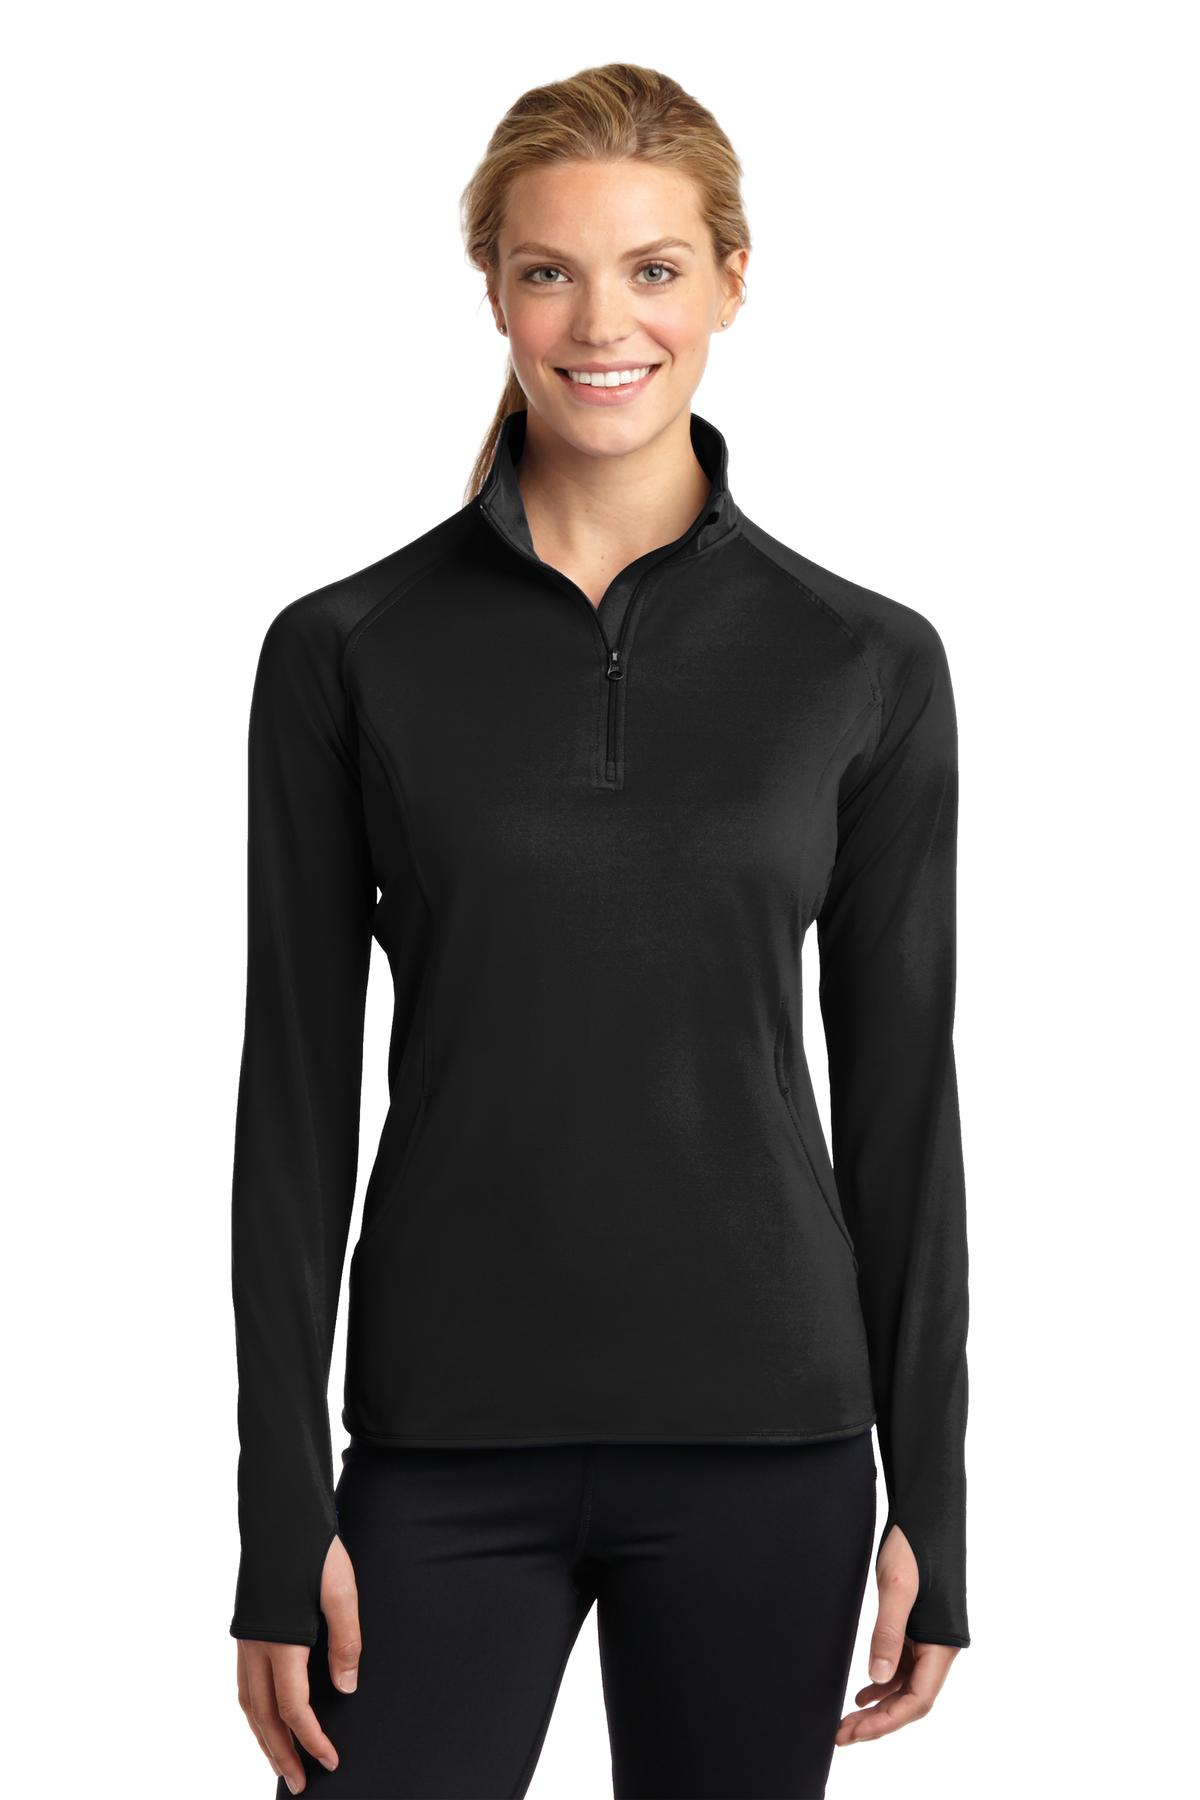 Sport-Tek ®  Ladies Sport-Wick ®  Stretch 1/2-Zip Pullover. LST850 - Black